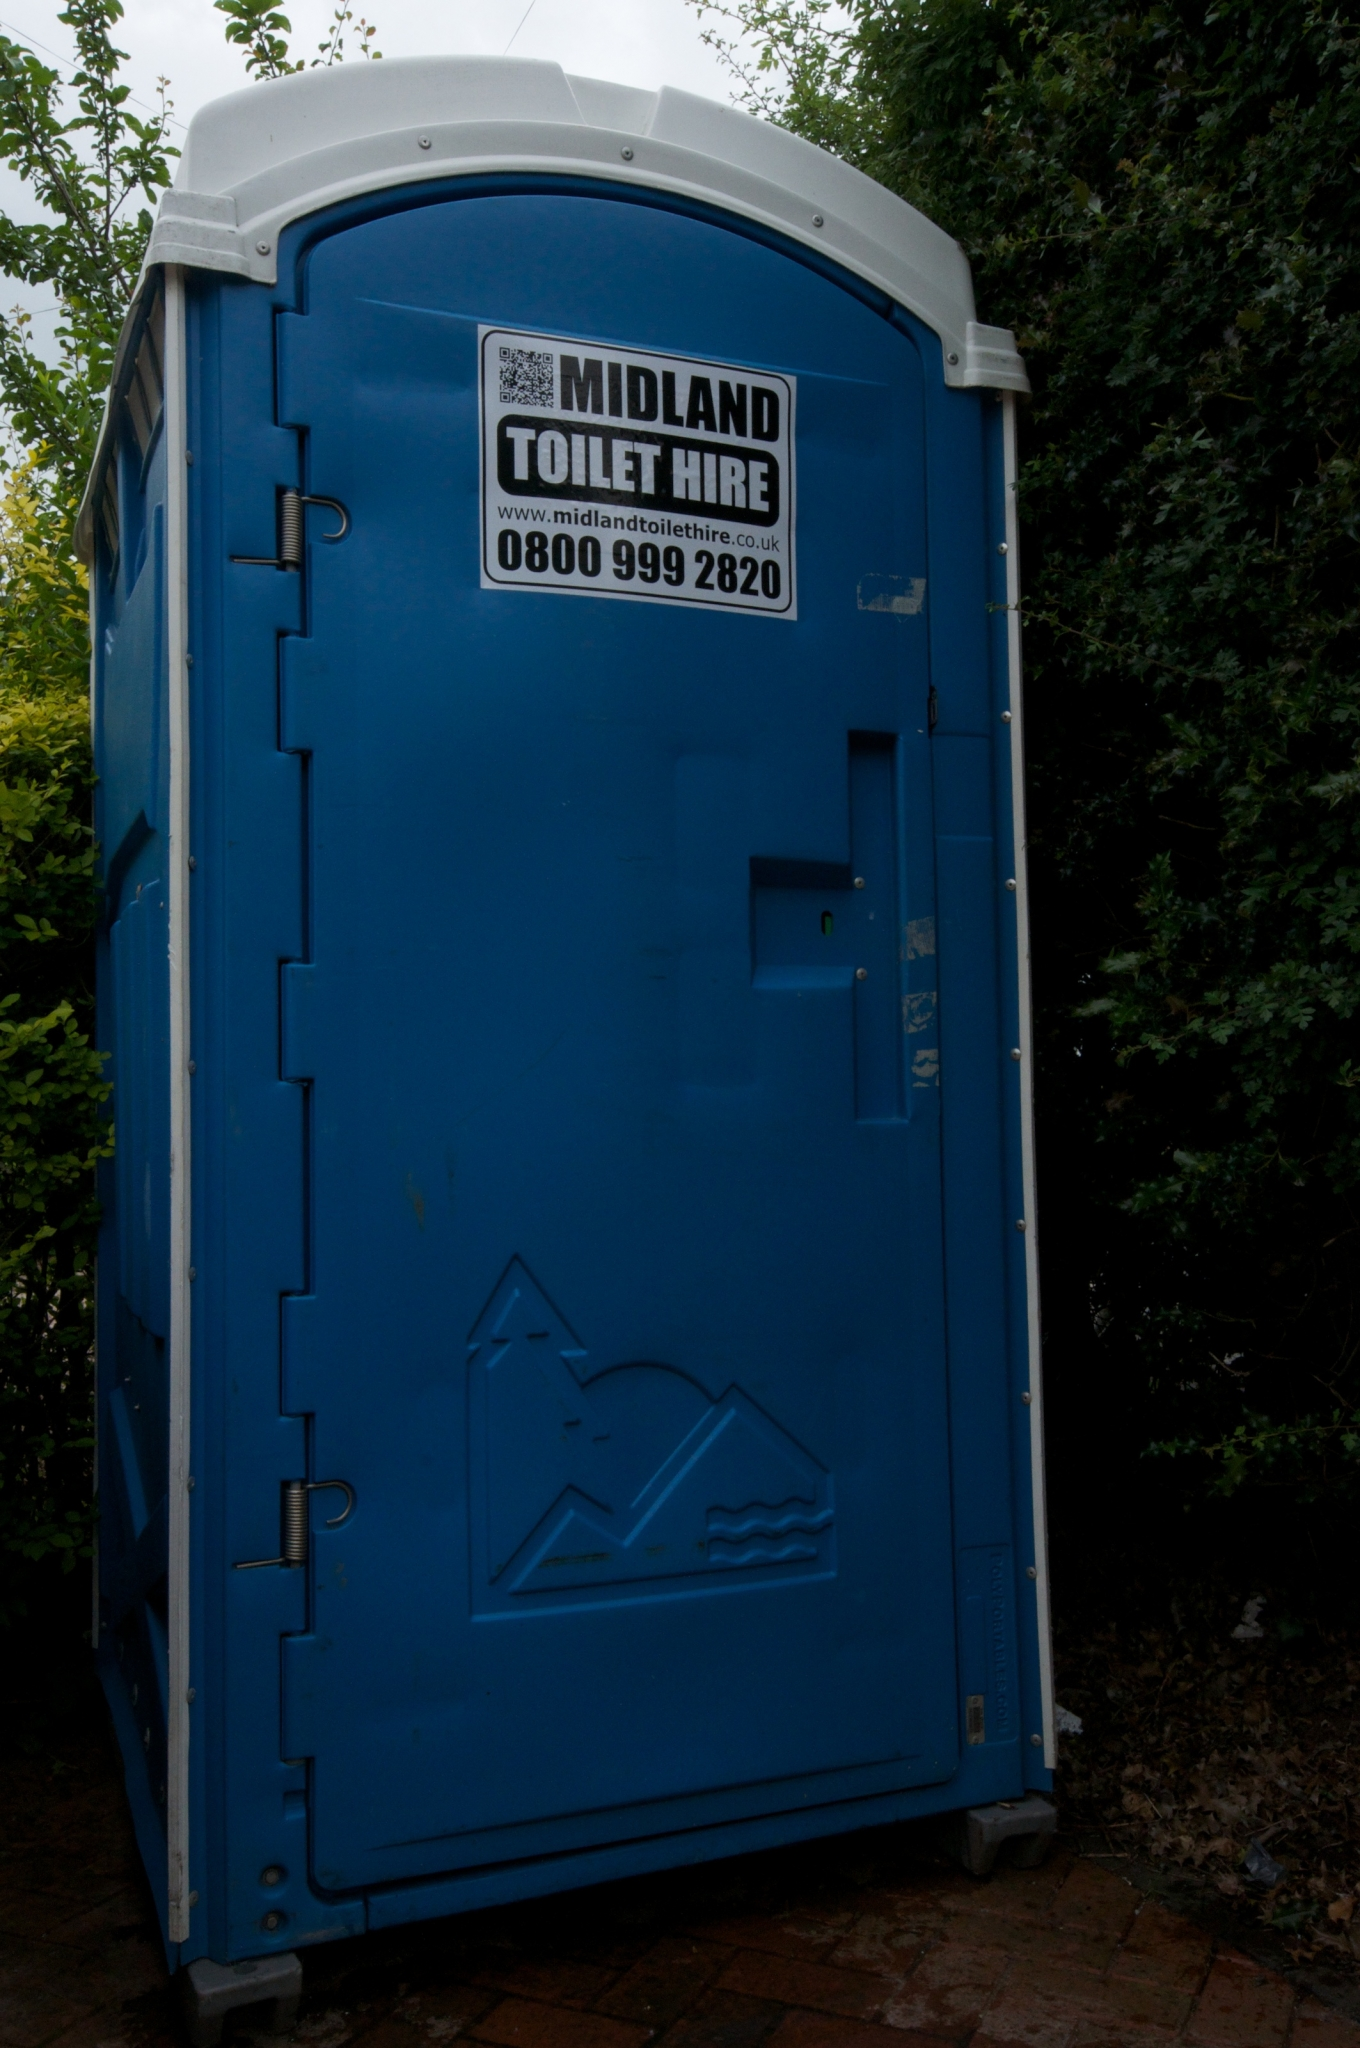 What are benefits of renting portable toilets?